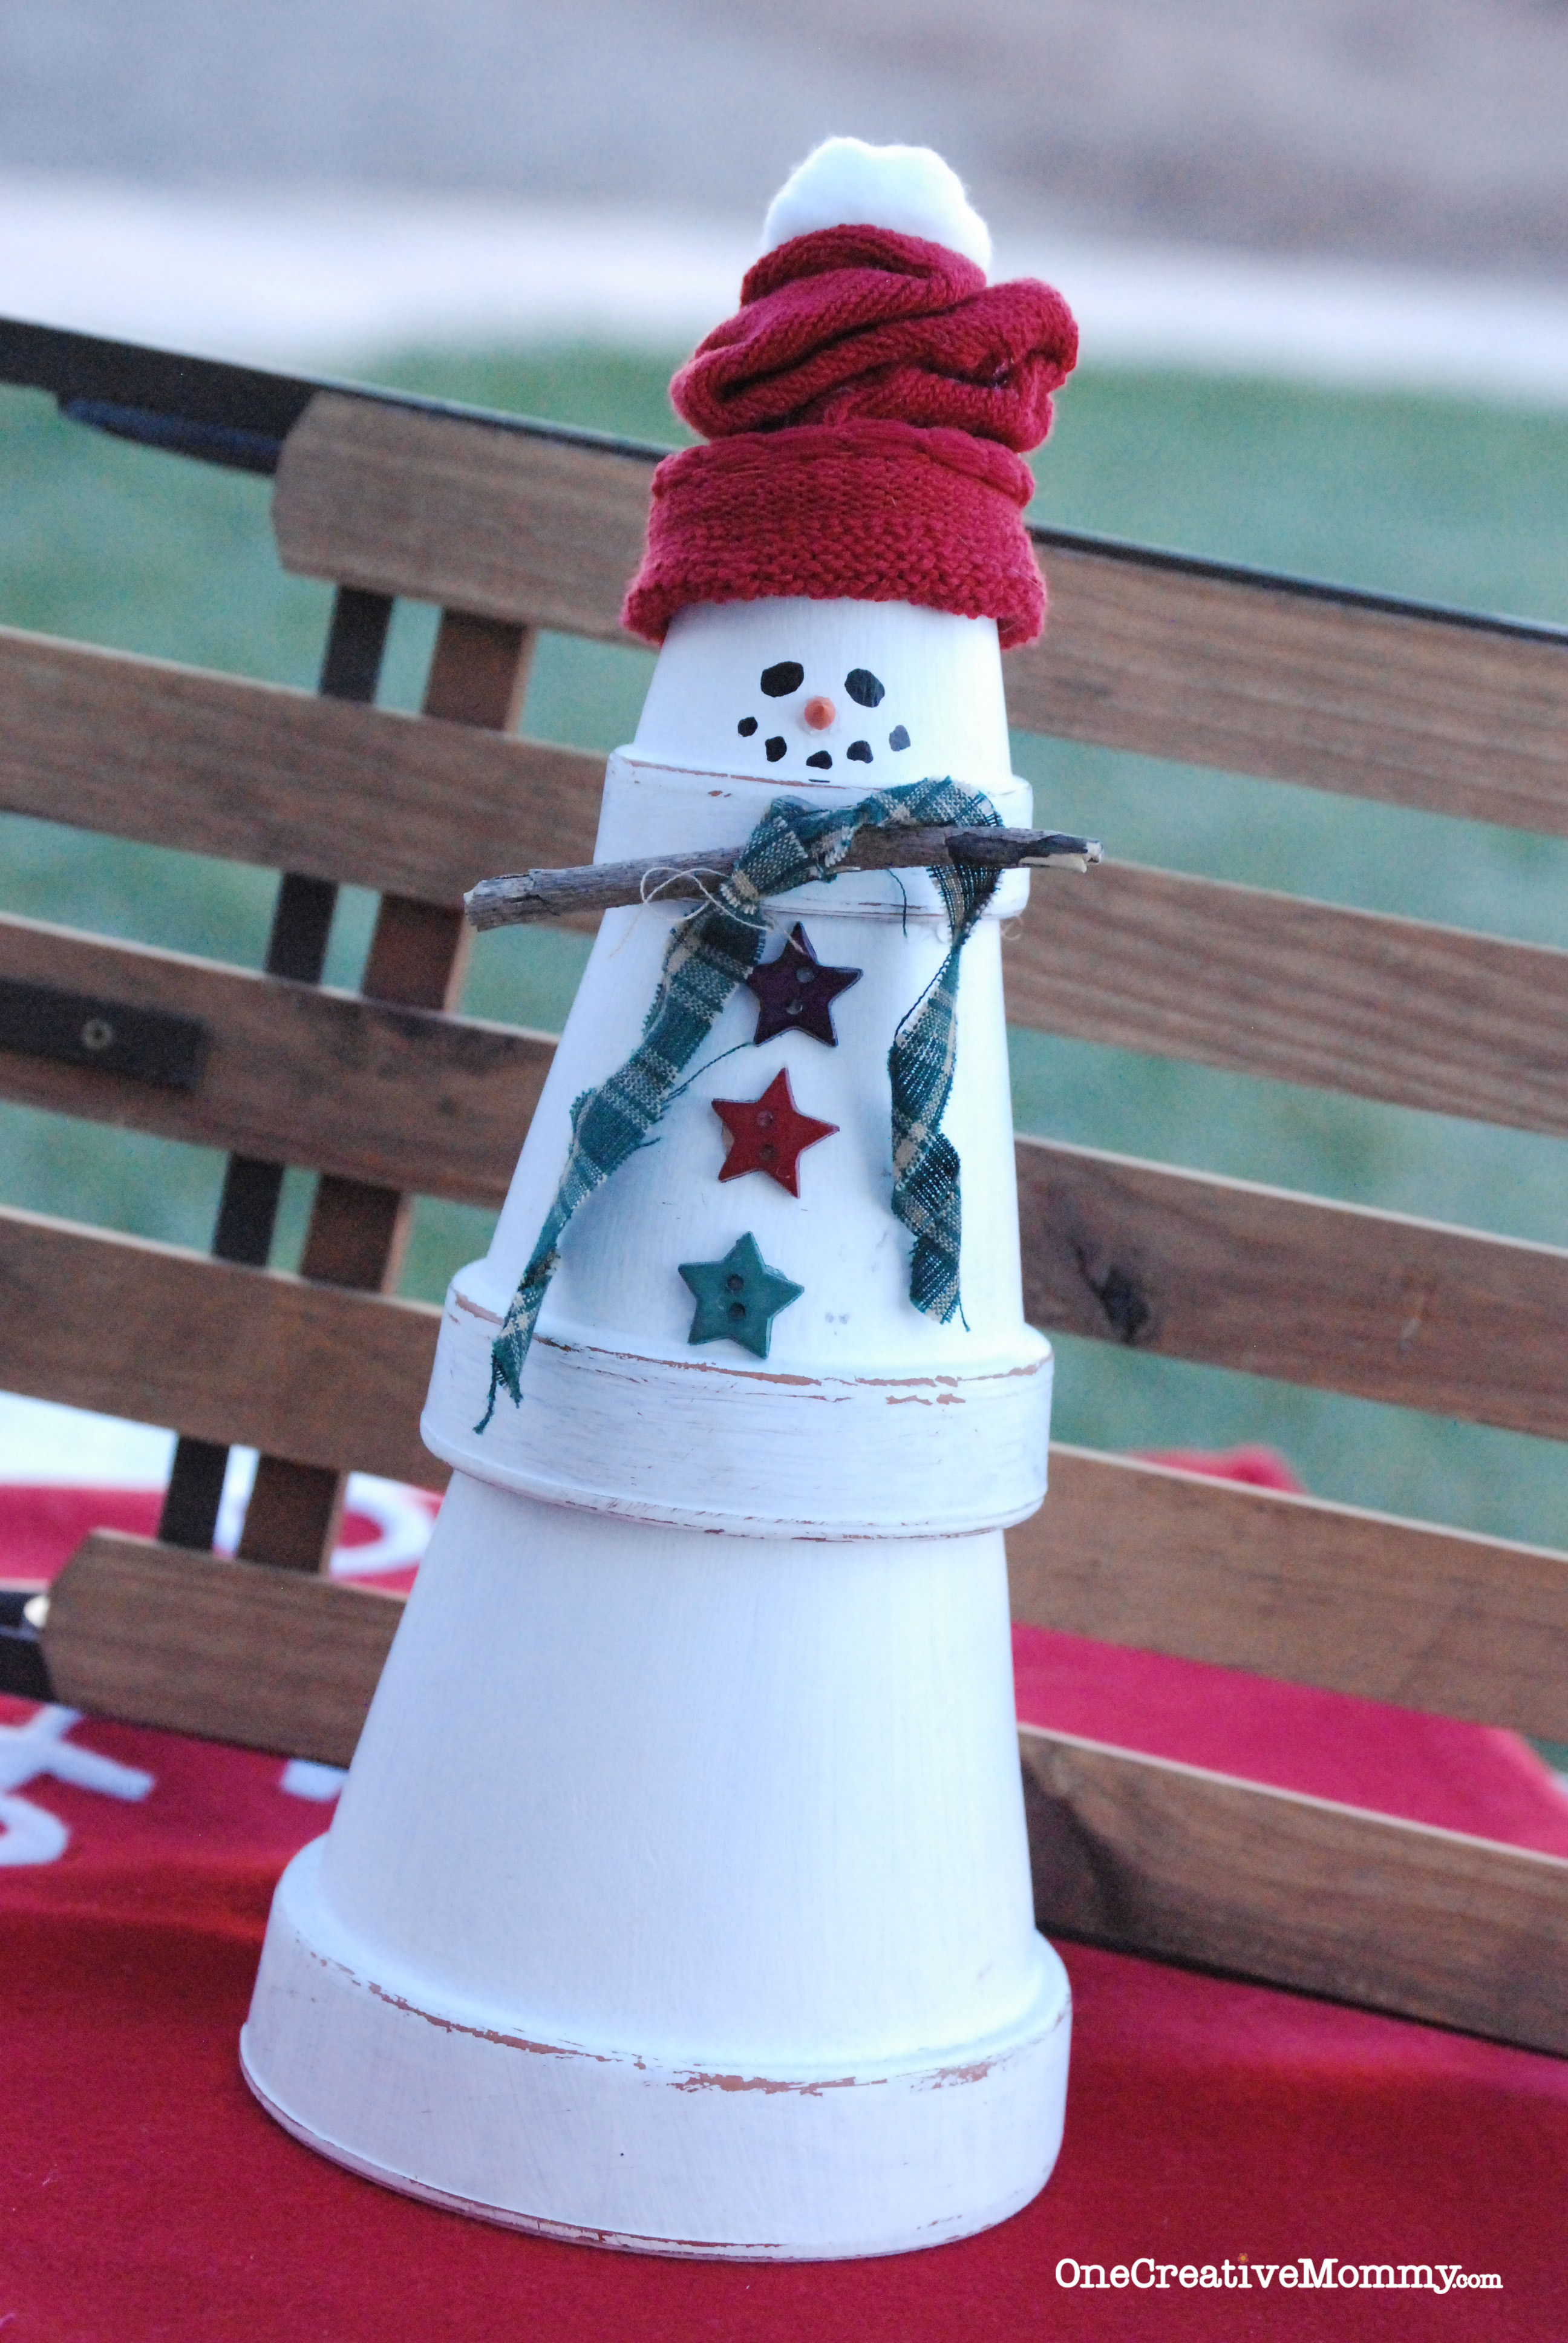 Crafts For Dad: Quick And Easy Terra Cotta Snowman Craft